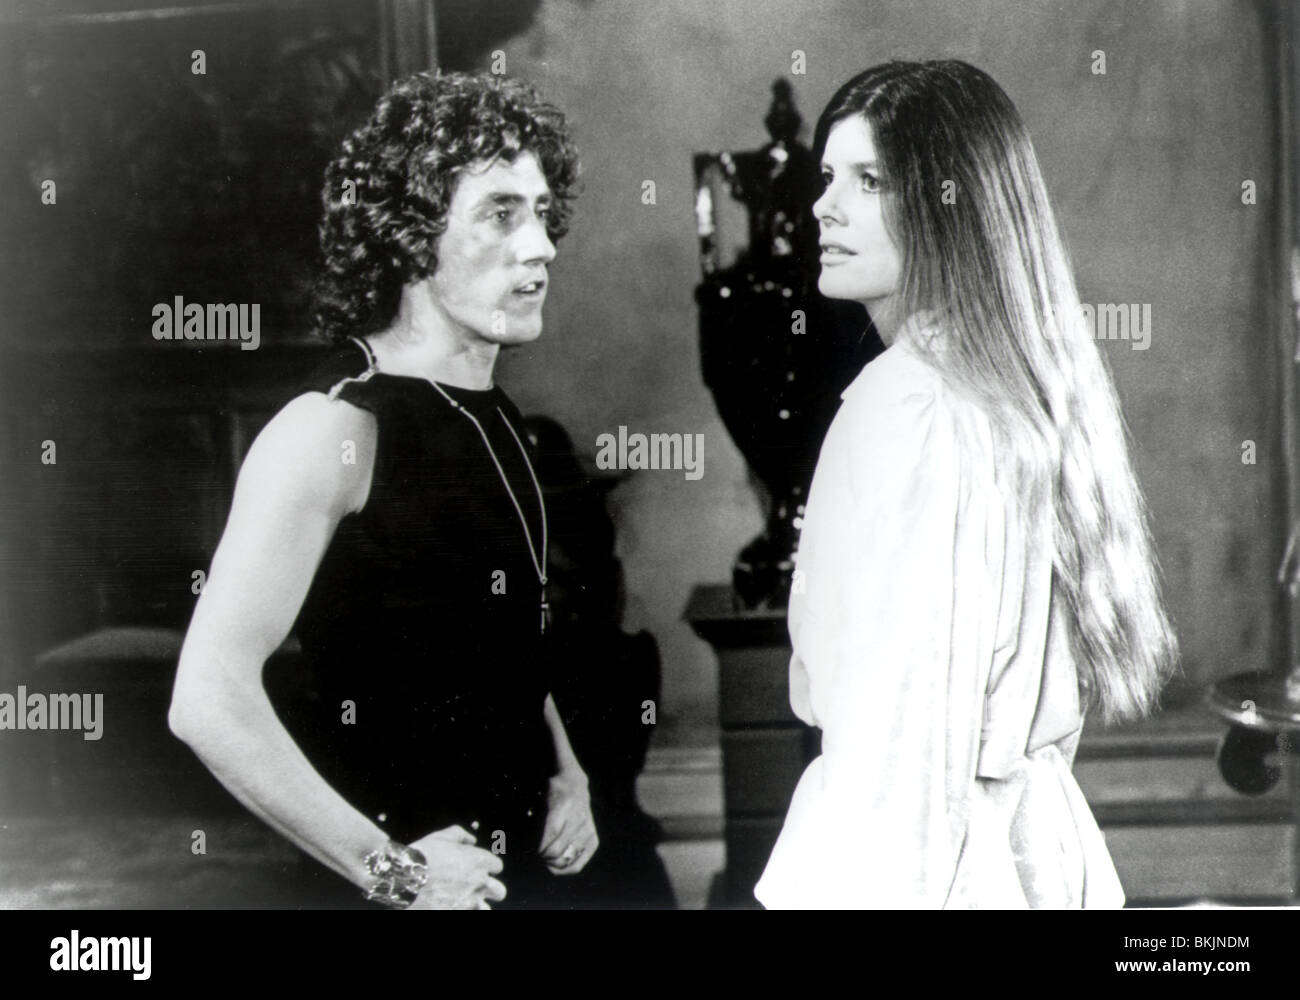 The Legacy 1978 Roger Daltry Katharine Ross Lgcy 004 P Stock